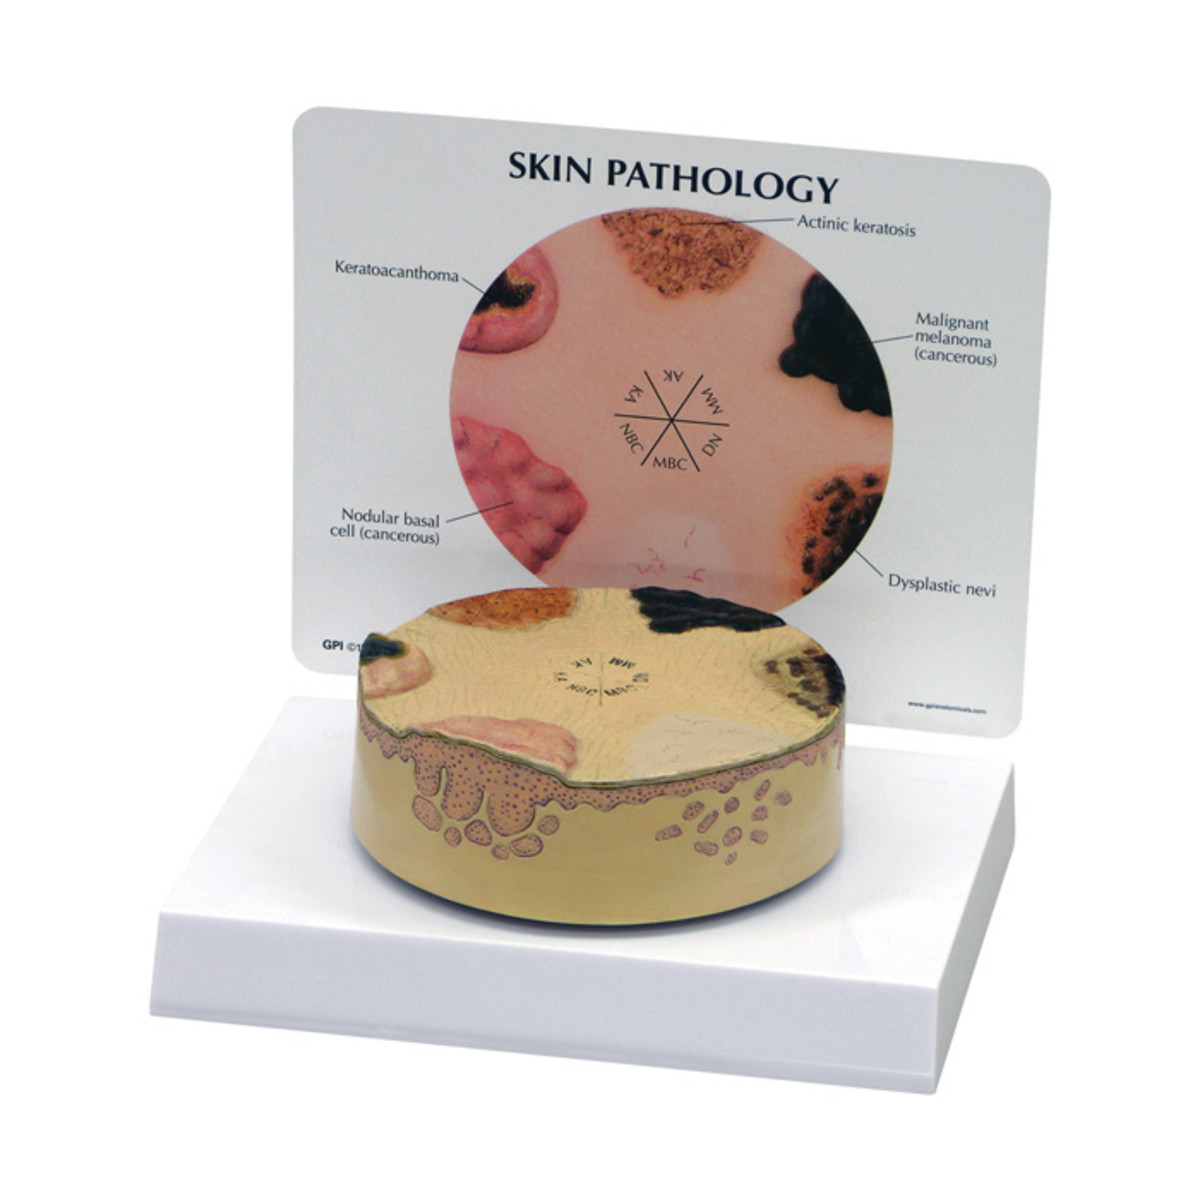 3-D circle model with 5 different skin conditions and a descriptive poster